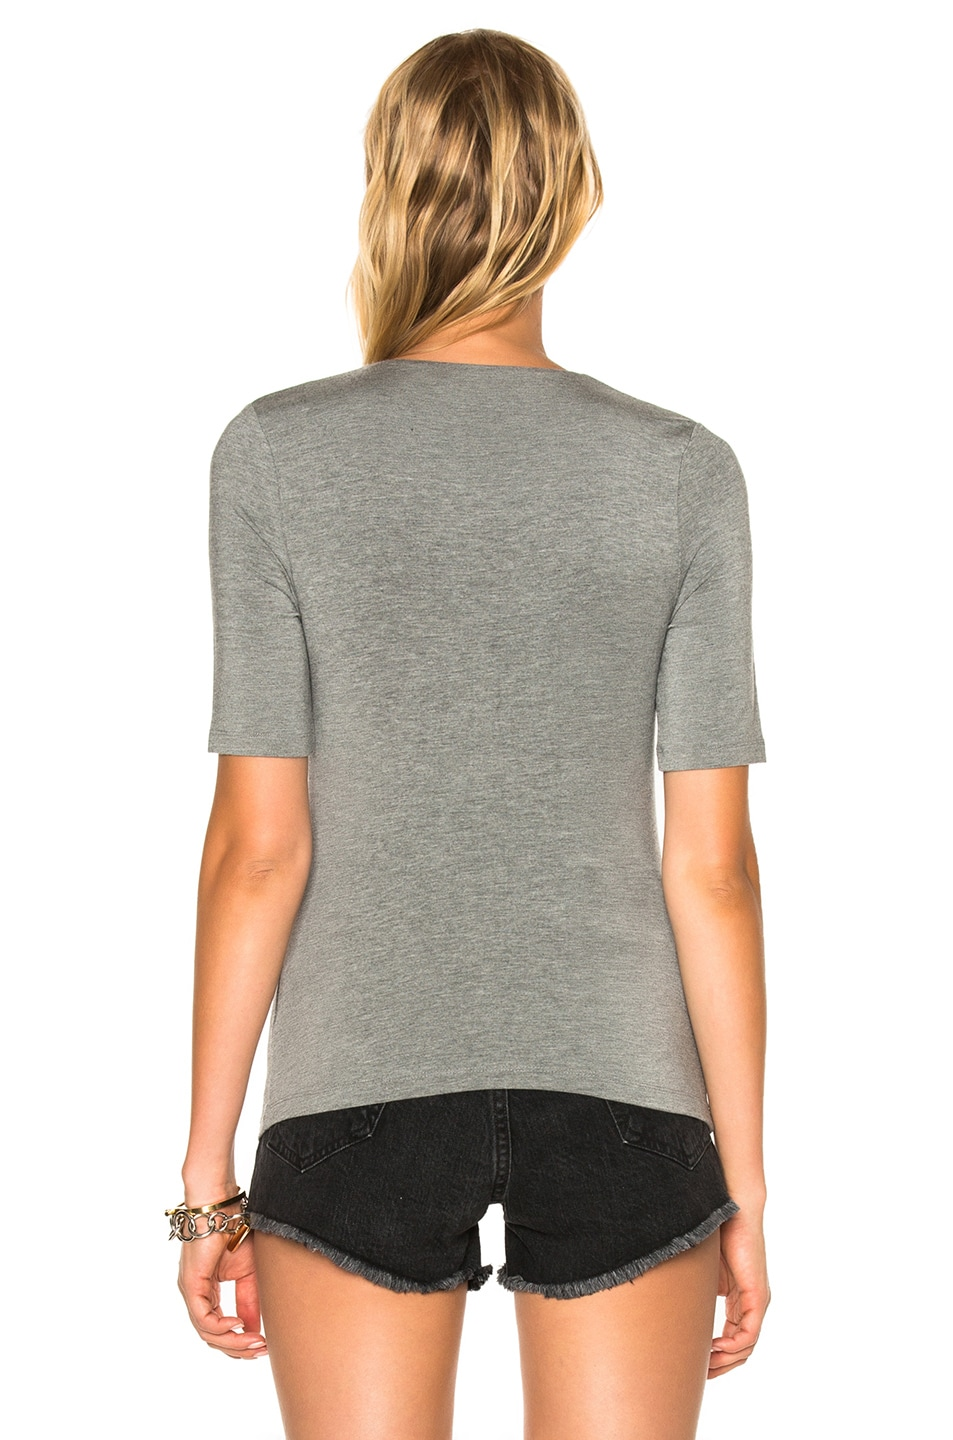 Image 4 of T by Alexander Wang Modal Spandex Shirred Front Short Sleeve Top in Heather Gray